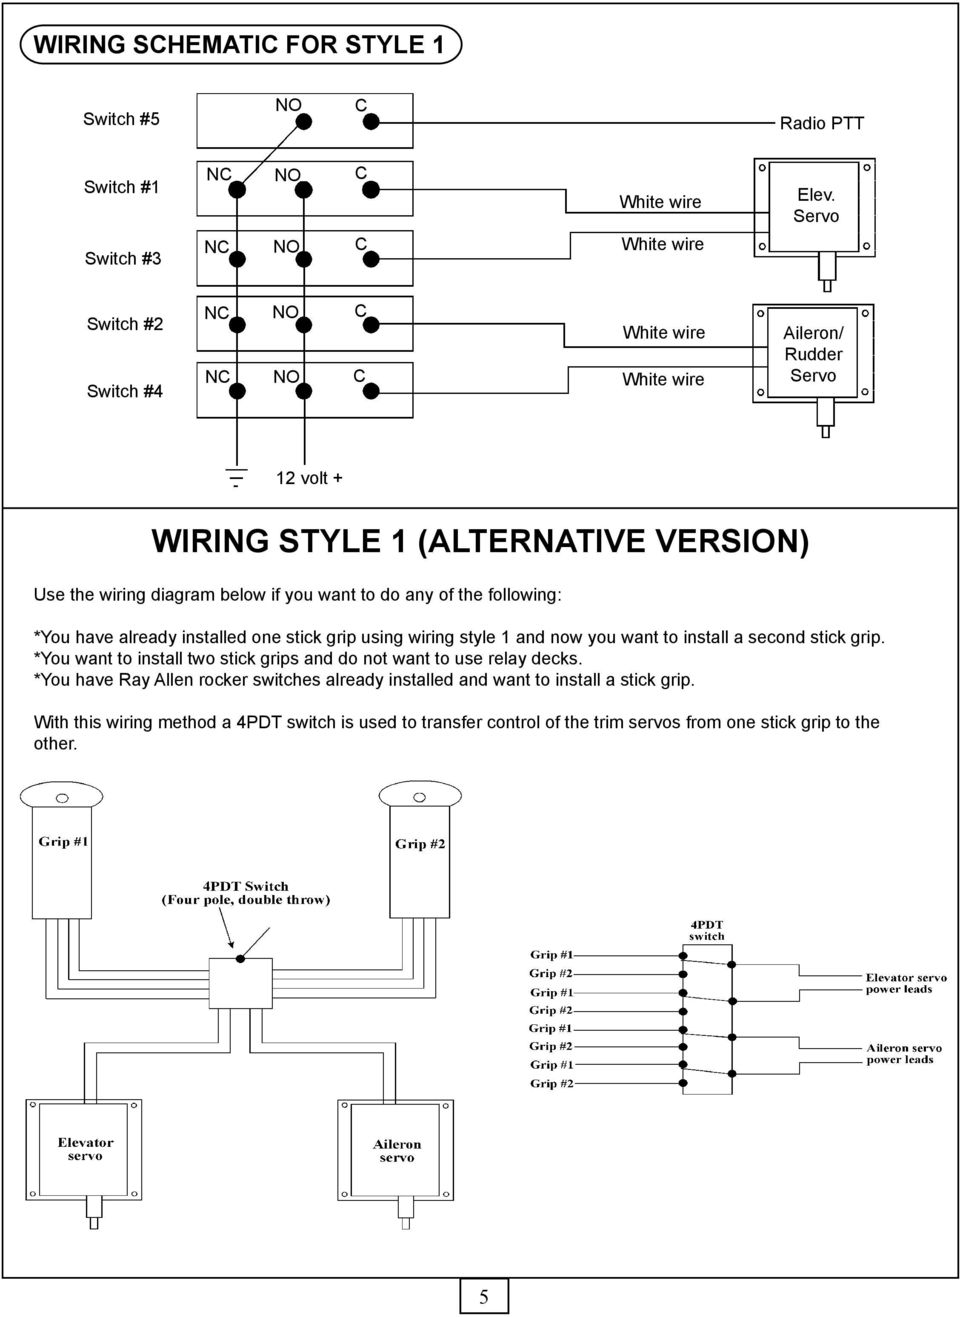 Installation Instructions For G205 And G207 Stick Grips Pdf 4pdt Wiring Diagram Following You Have Already Installed One Grip Using Style 1 Now